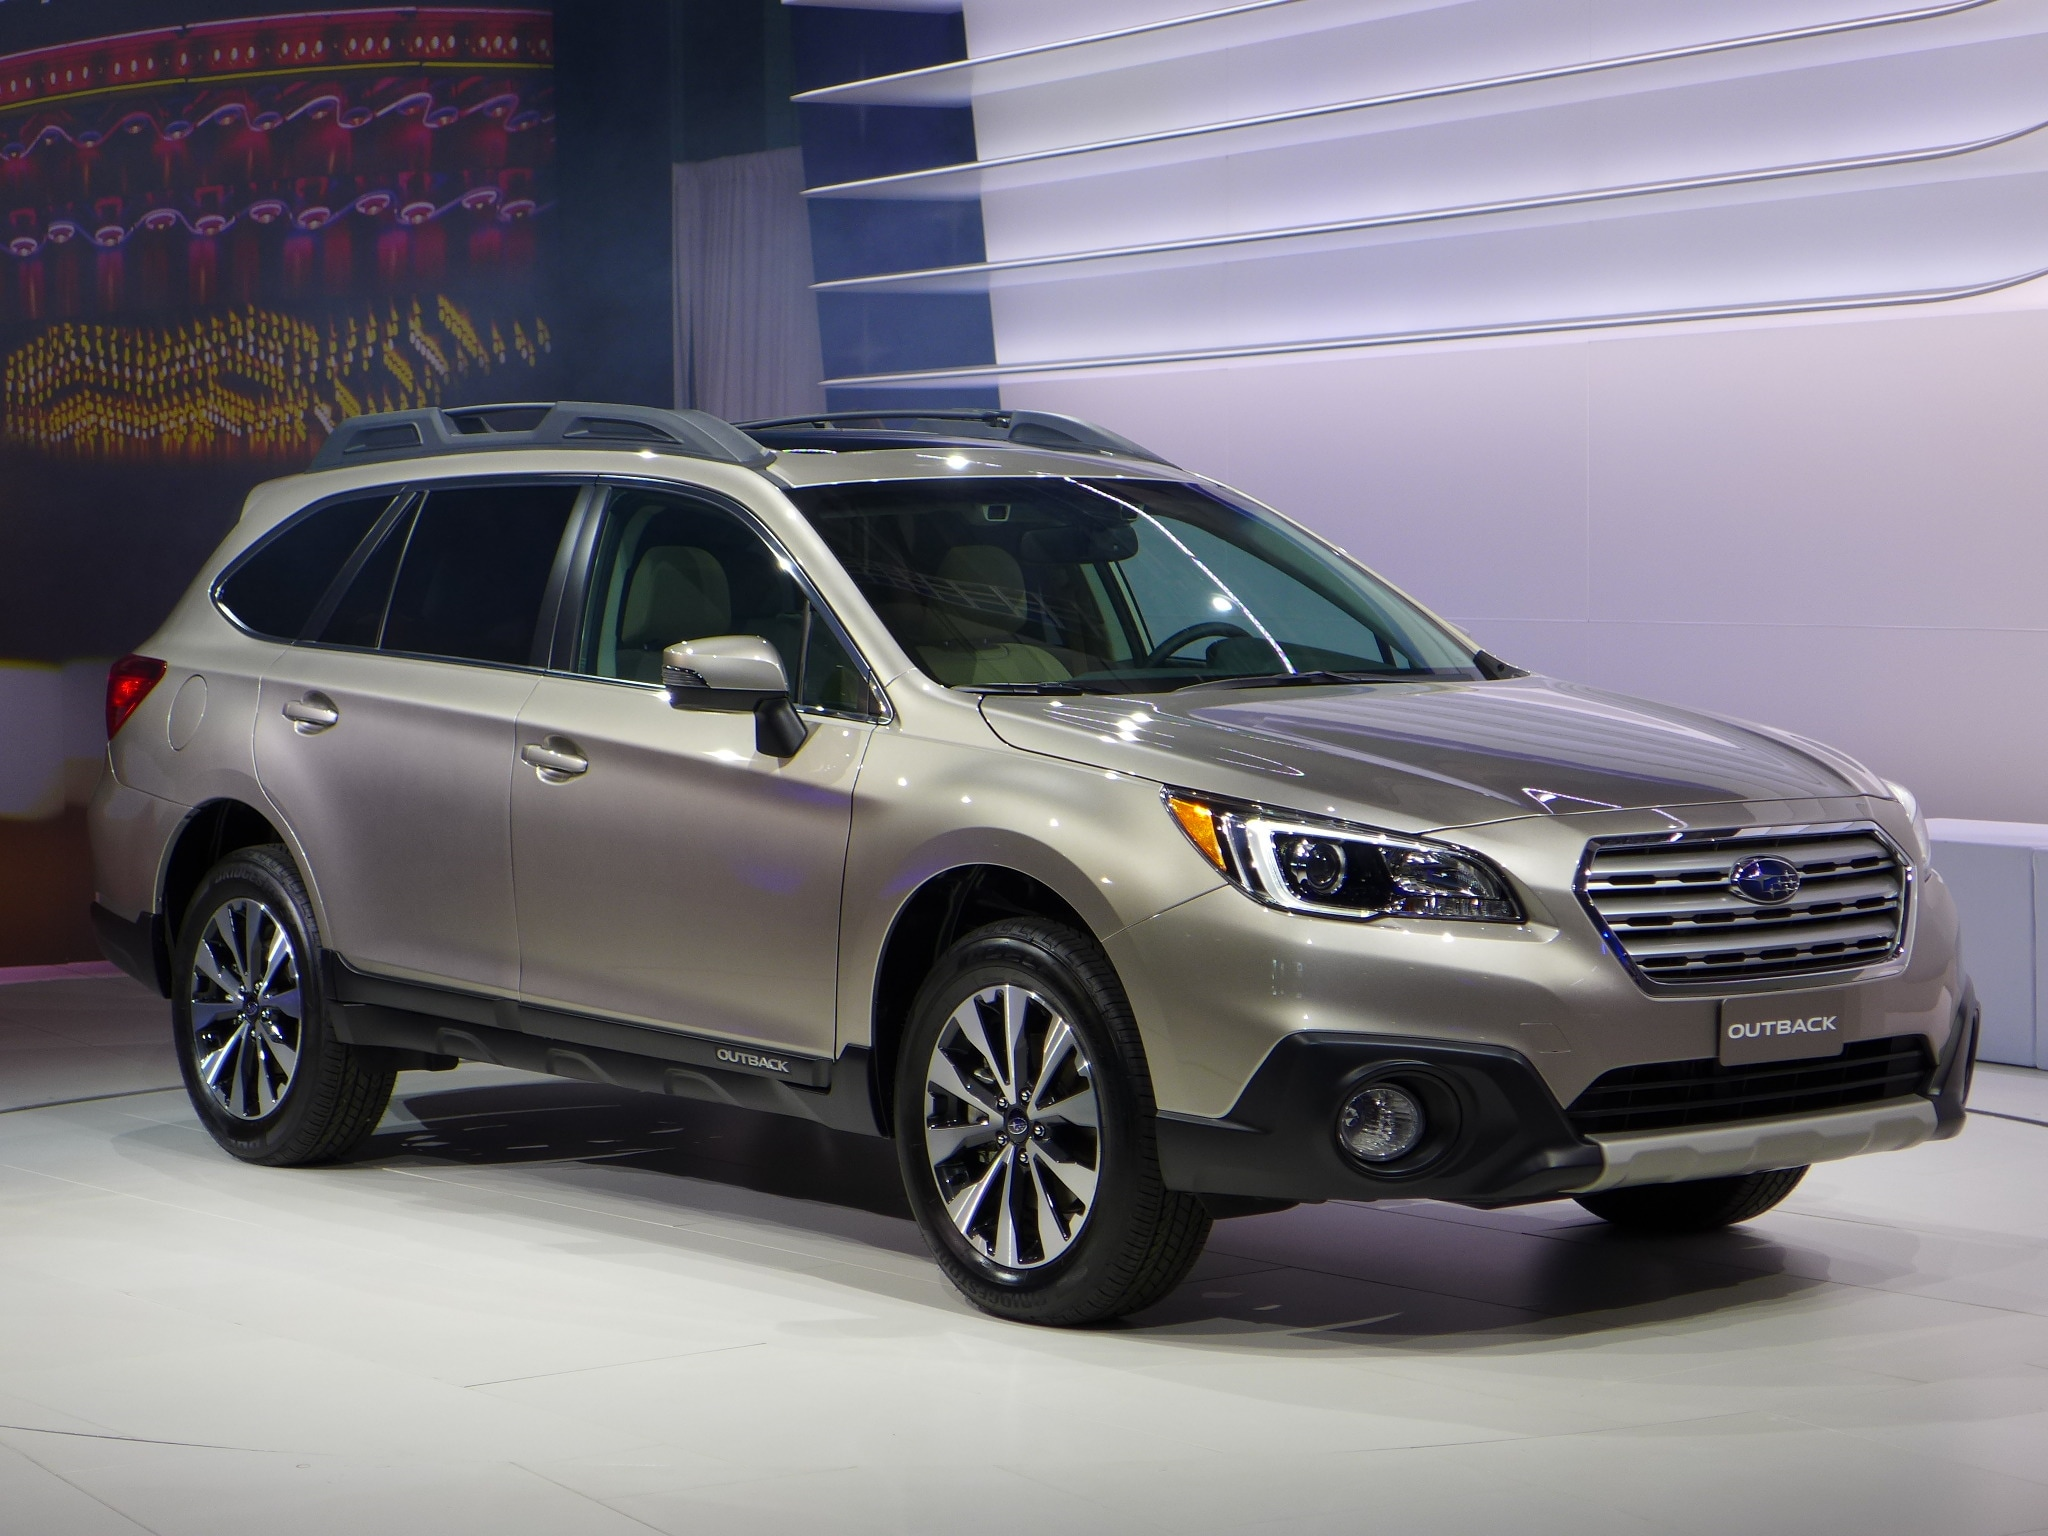 2015 Subaru Outback Redesign Pictures Autos Post